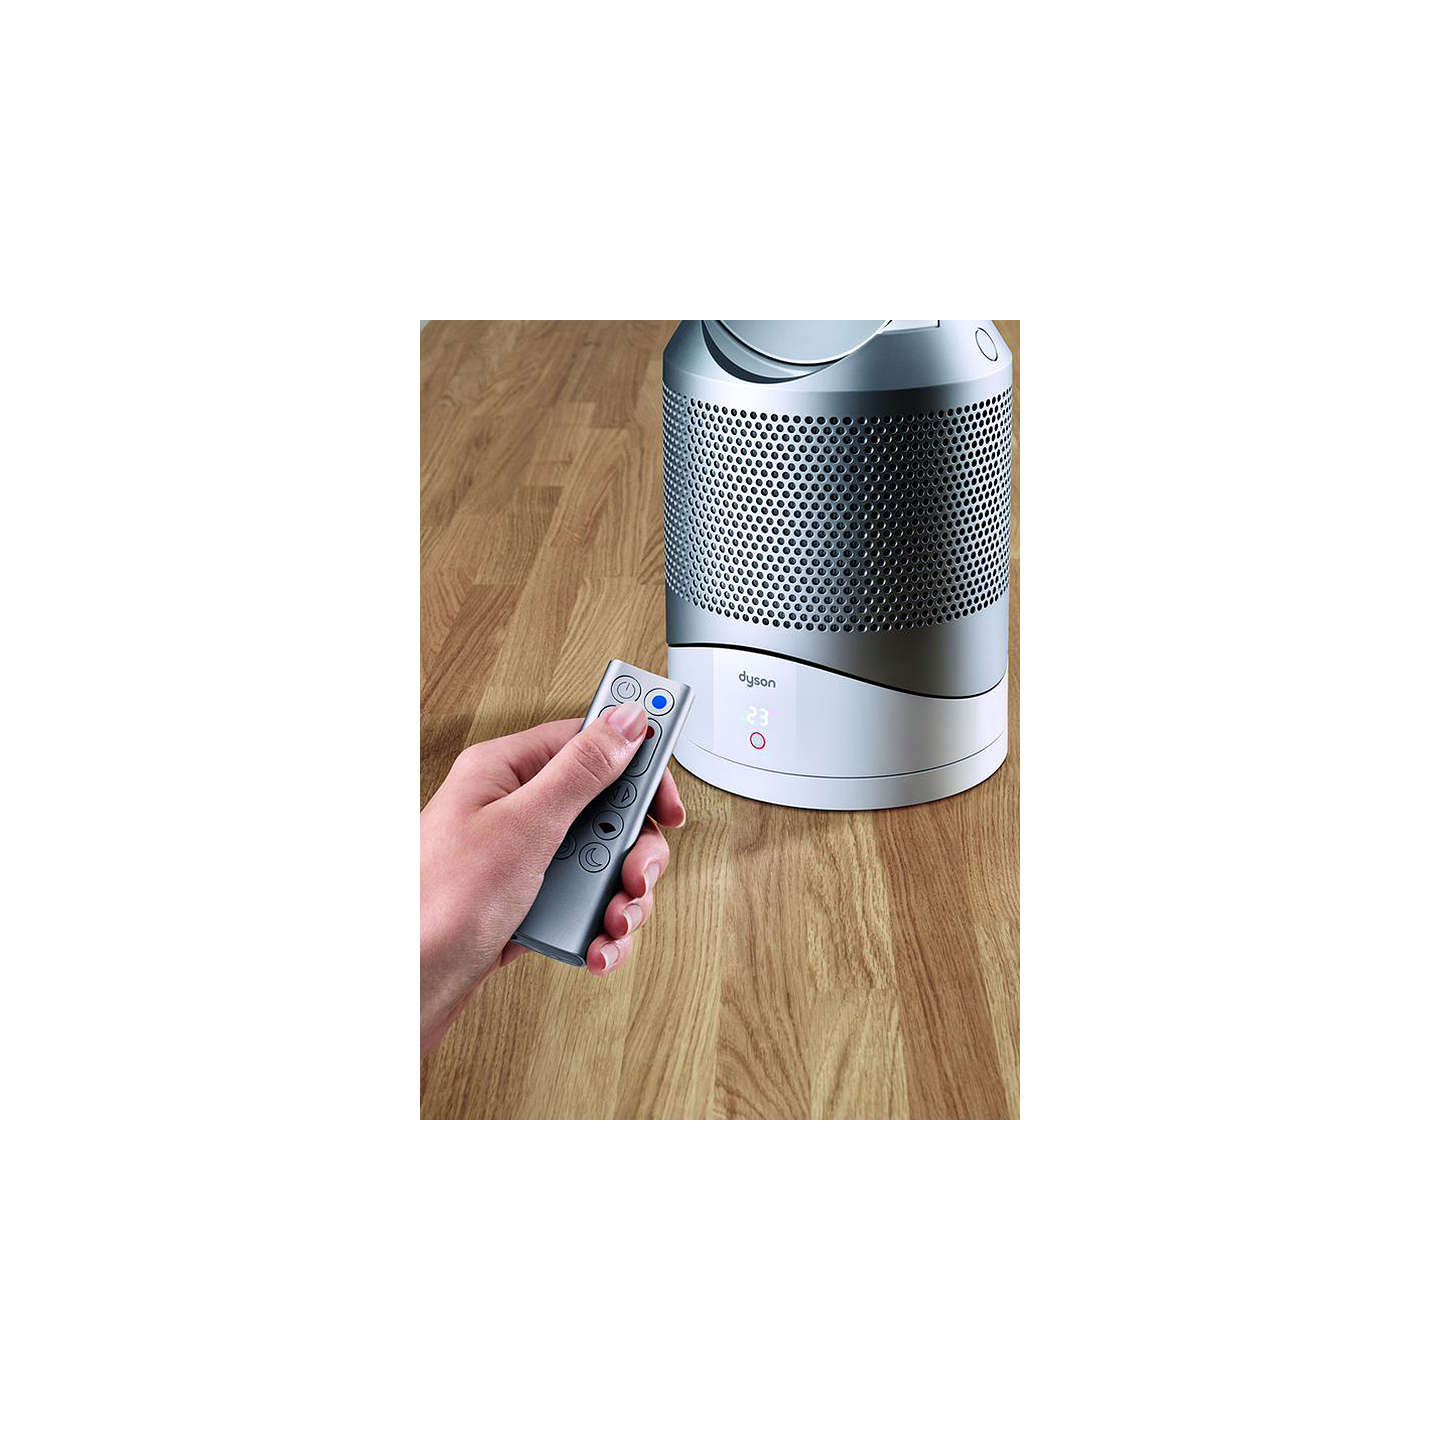 BuyDyson Pure Hot + Cool Link™ Fan Heater Air Purifier, White/Silver Online at johnlewis.com